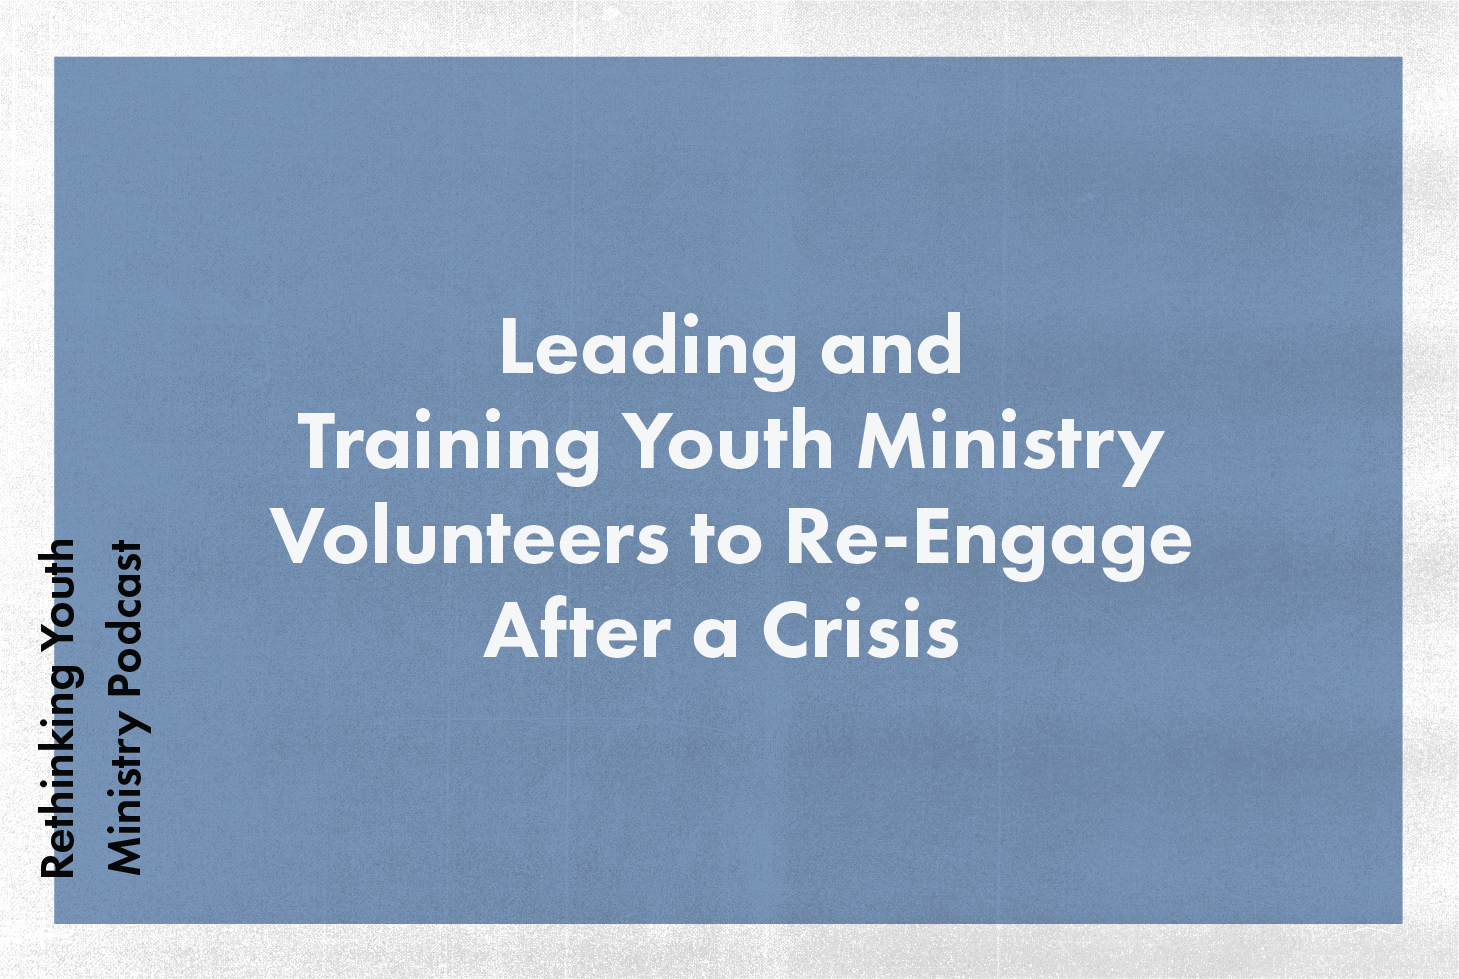 RYM 100: Leading And Training Youth Ministry Volunteers to Re-Engage After A Crisis